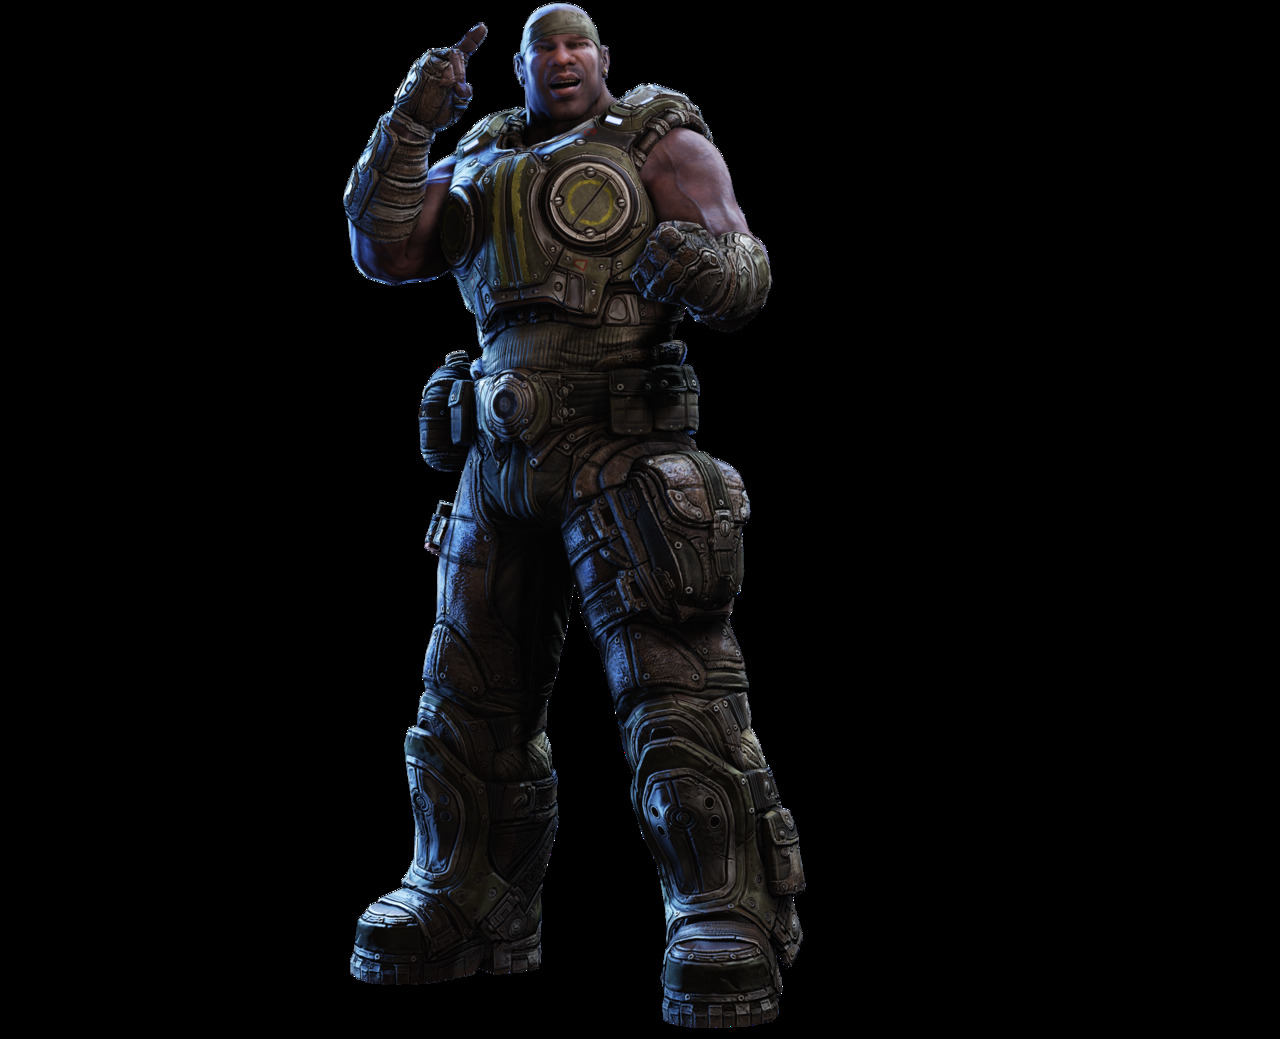 Artworky a screenshoty z Gears of War 3 44670